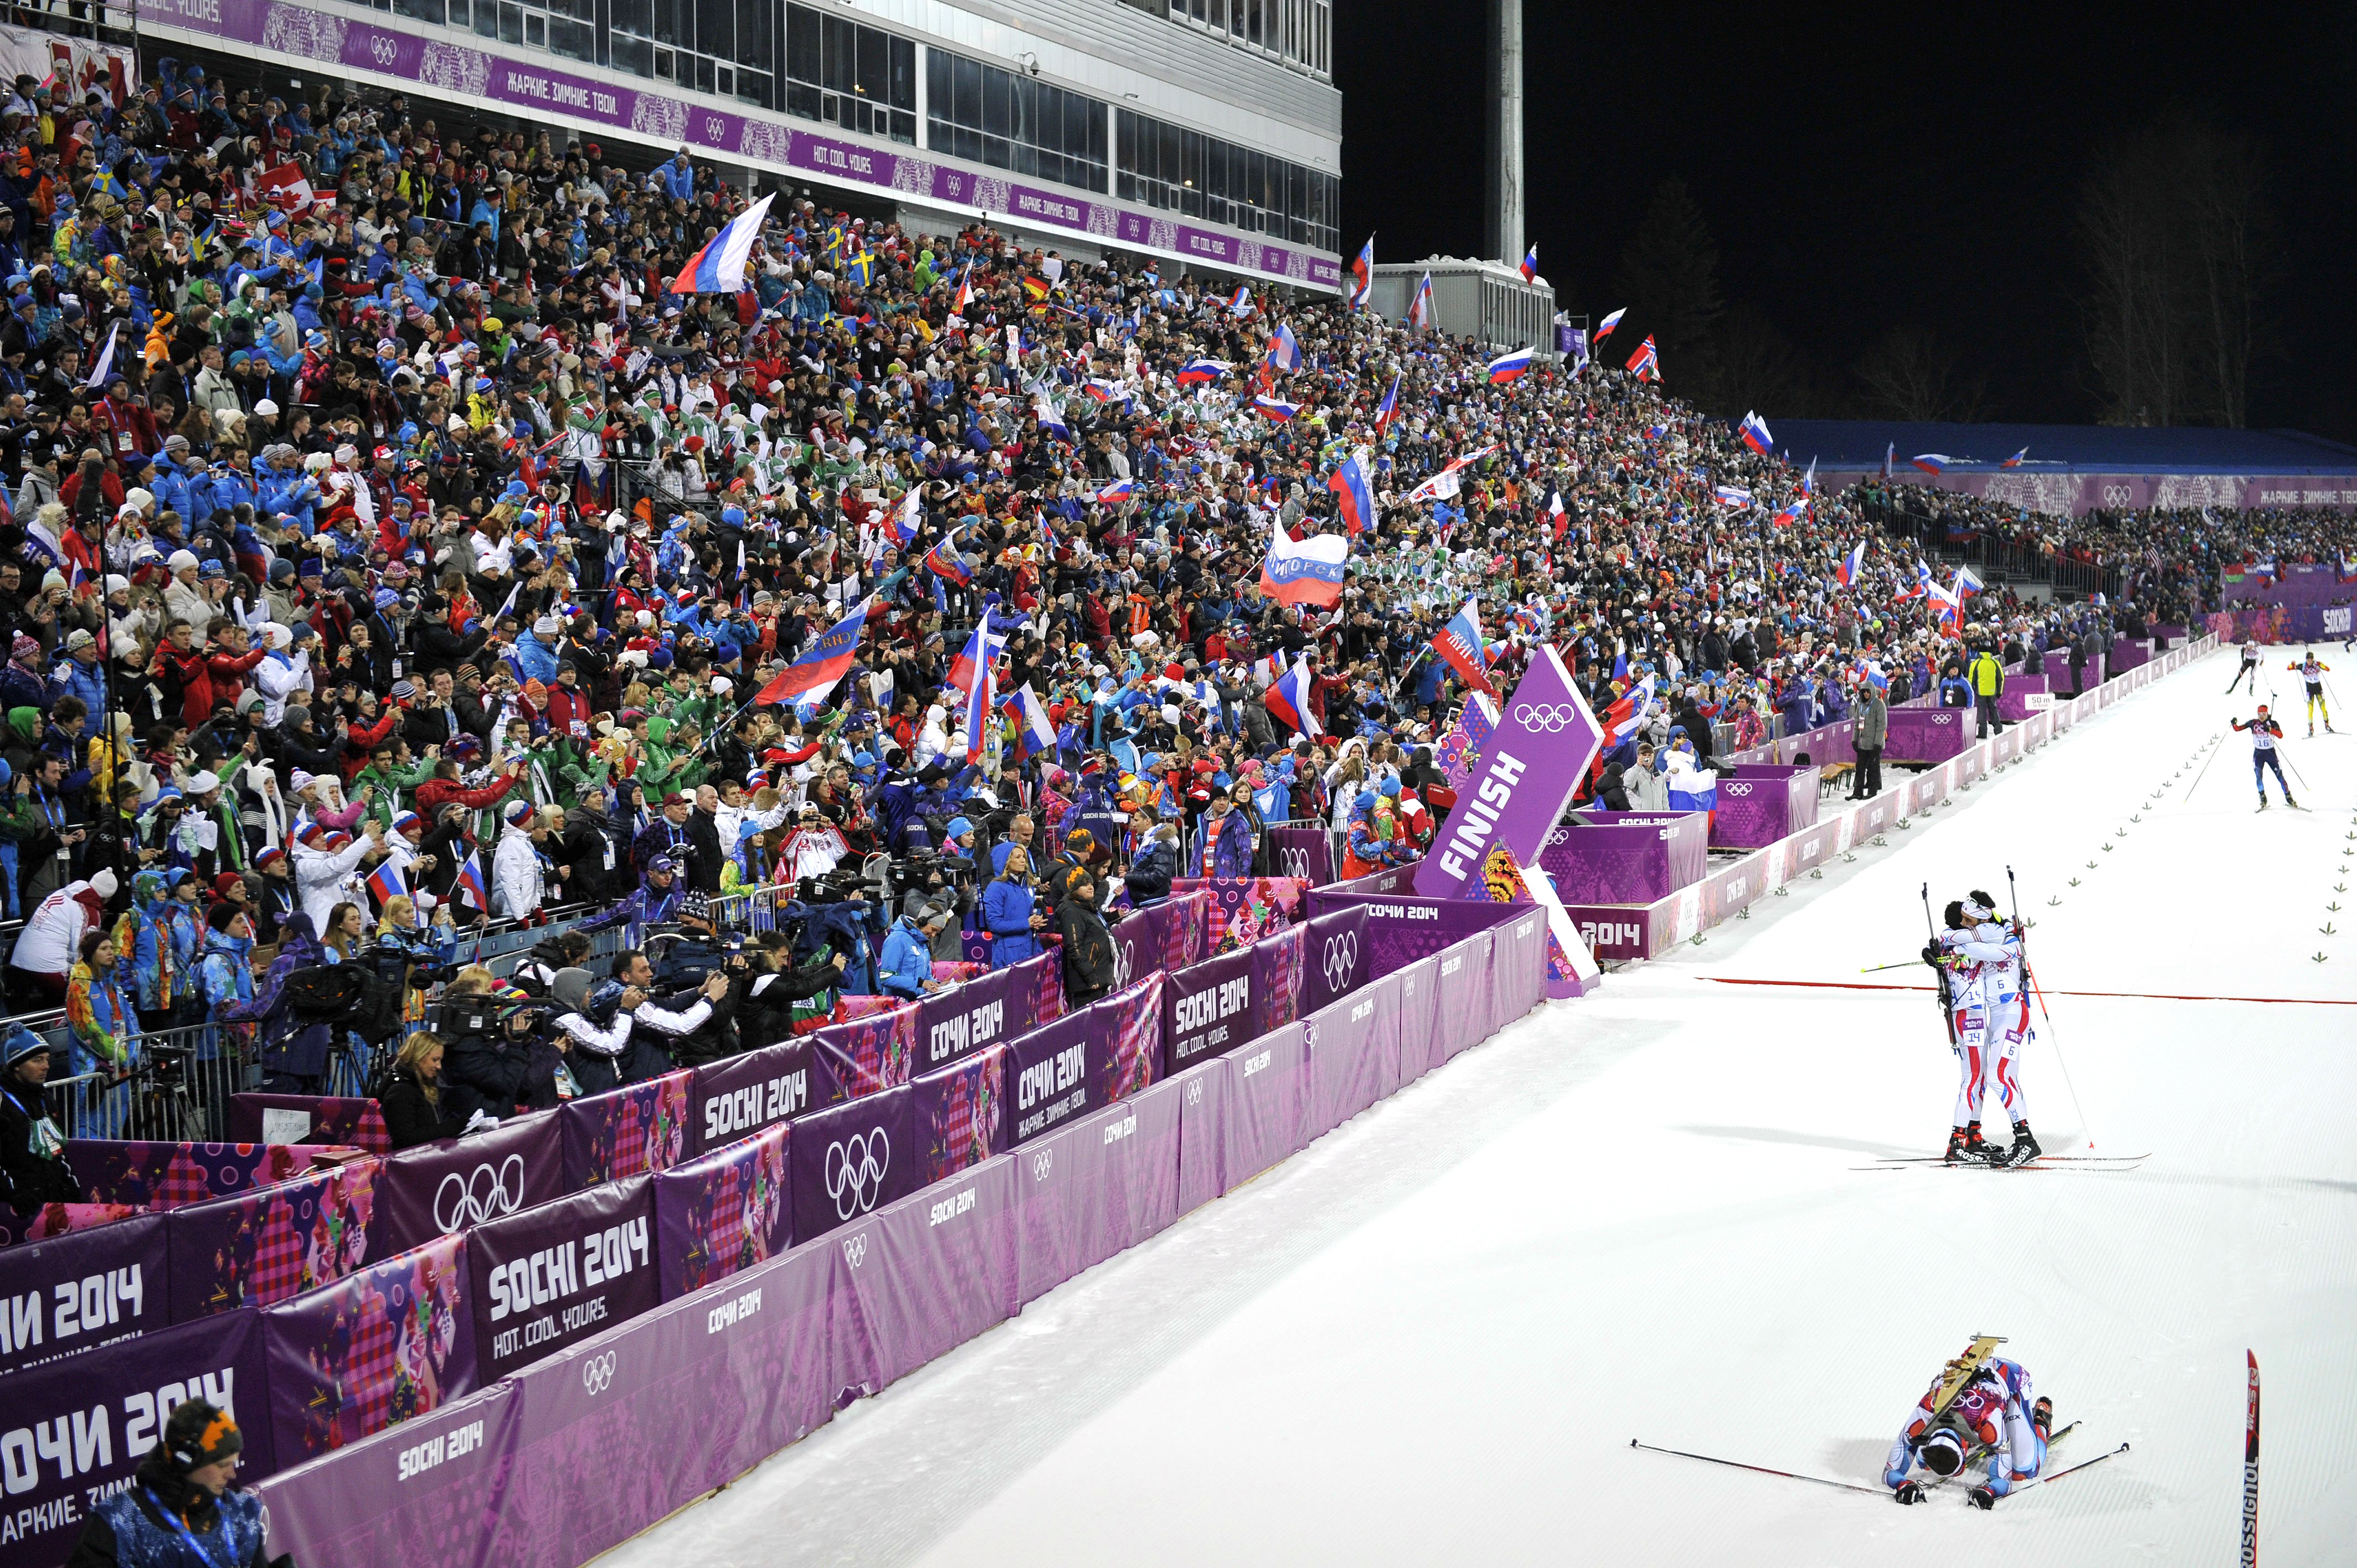 Gold medalist Martin Fourcade and bronze medalist Jean Guillaume Beatrix, both of France, celebrate while silver medalist Ondrej Moravec of the Czech Republic lies on the ground in the finish area of the Biathlon Men's 12.5km Pursuit at the Laura Cross-country Ski & Biathlon Center.